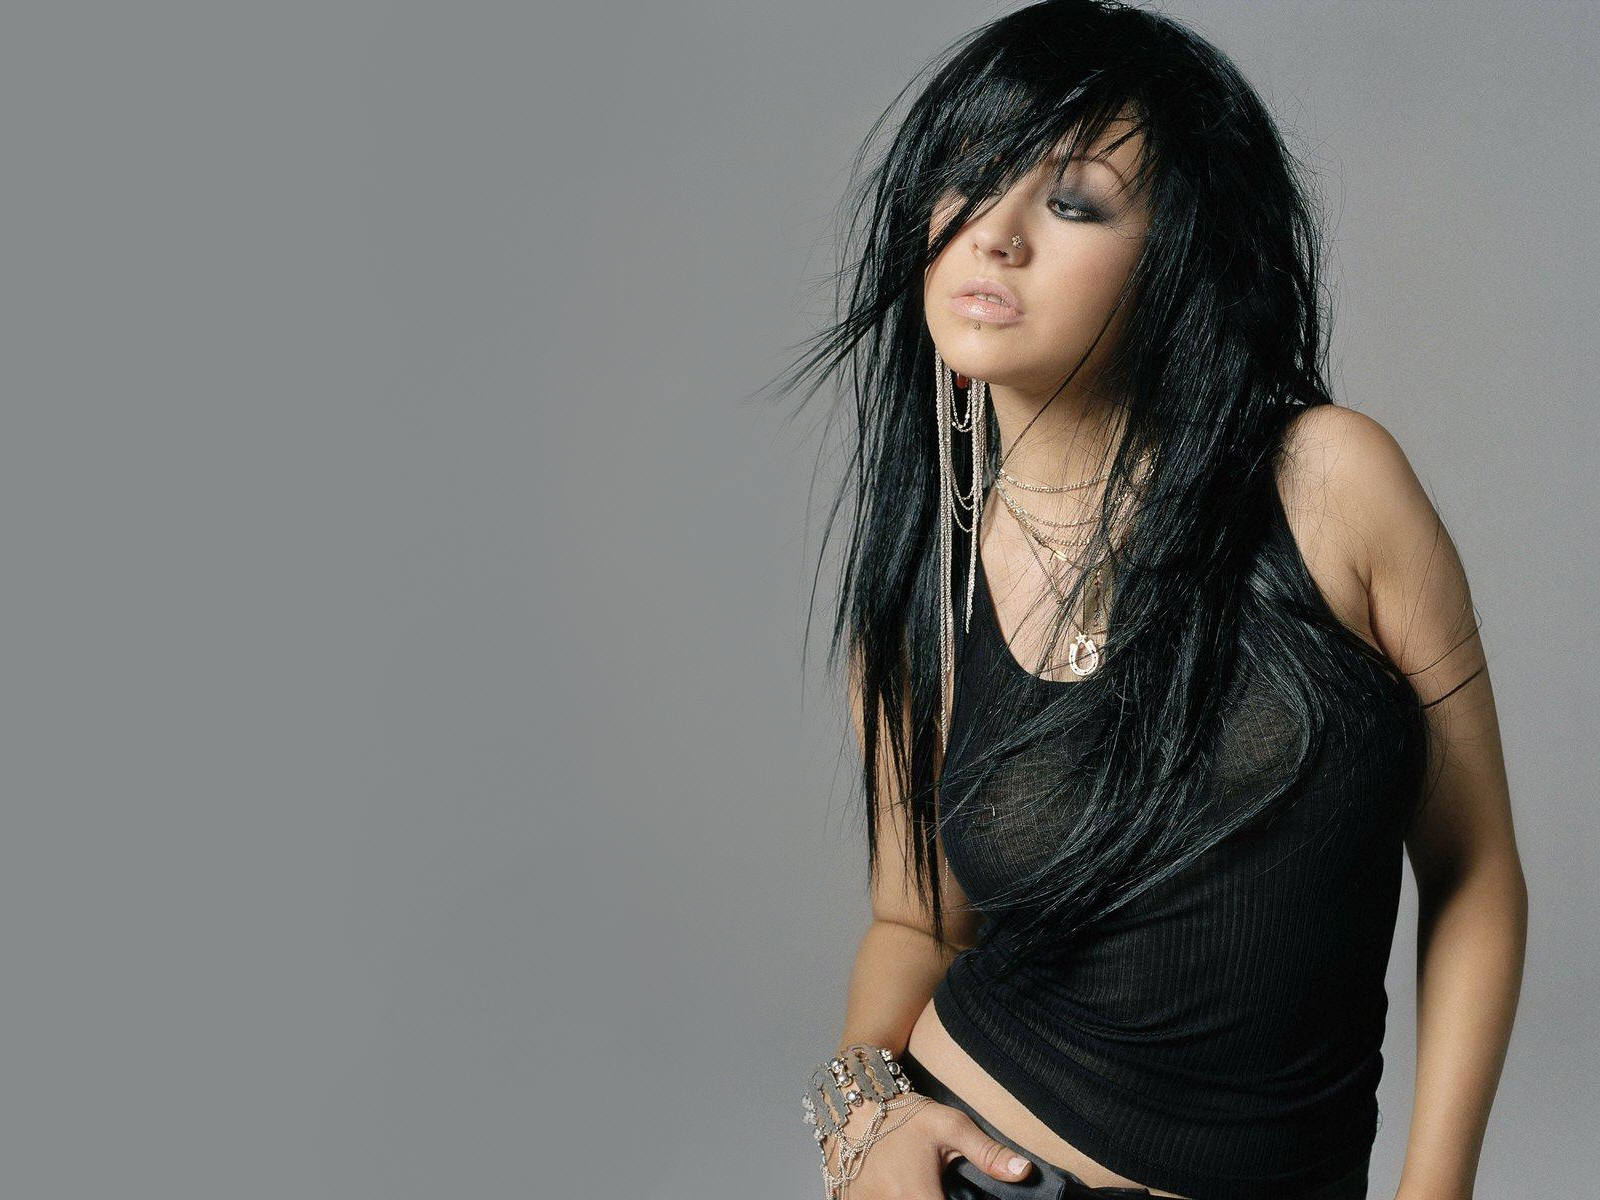 Best Woman Wallpapers Christina Aguilera Wallpapers 1600x1200